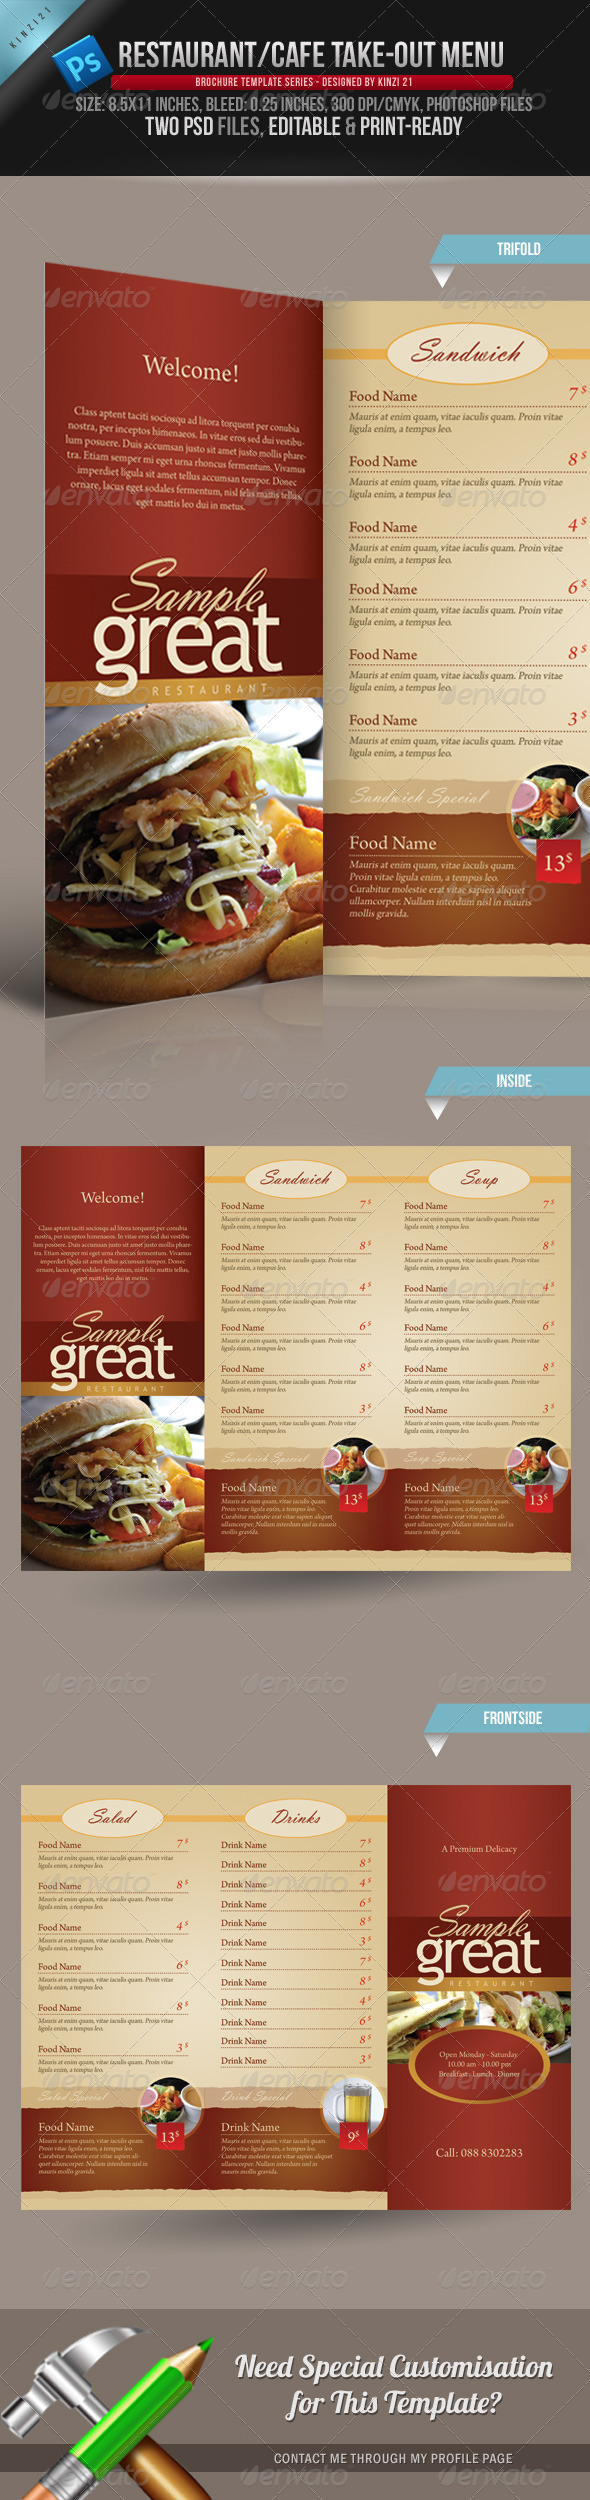 GraphicRiver Restaurant Cafe Take-out Menu Template 160495